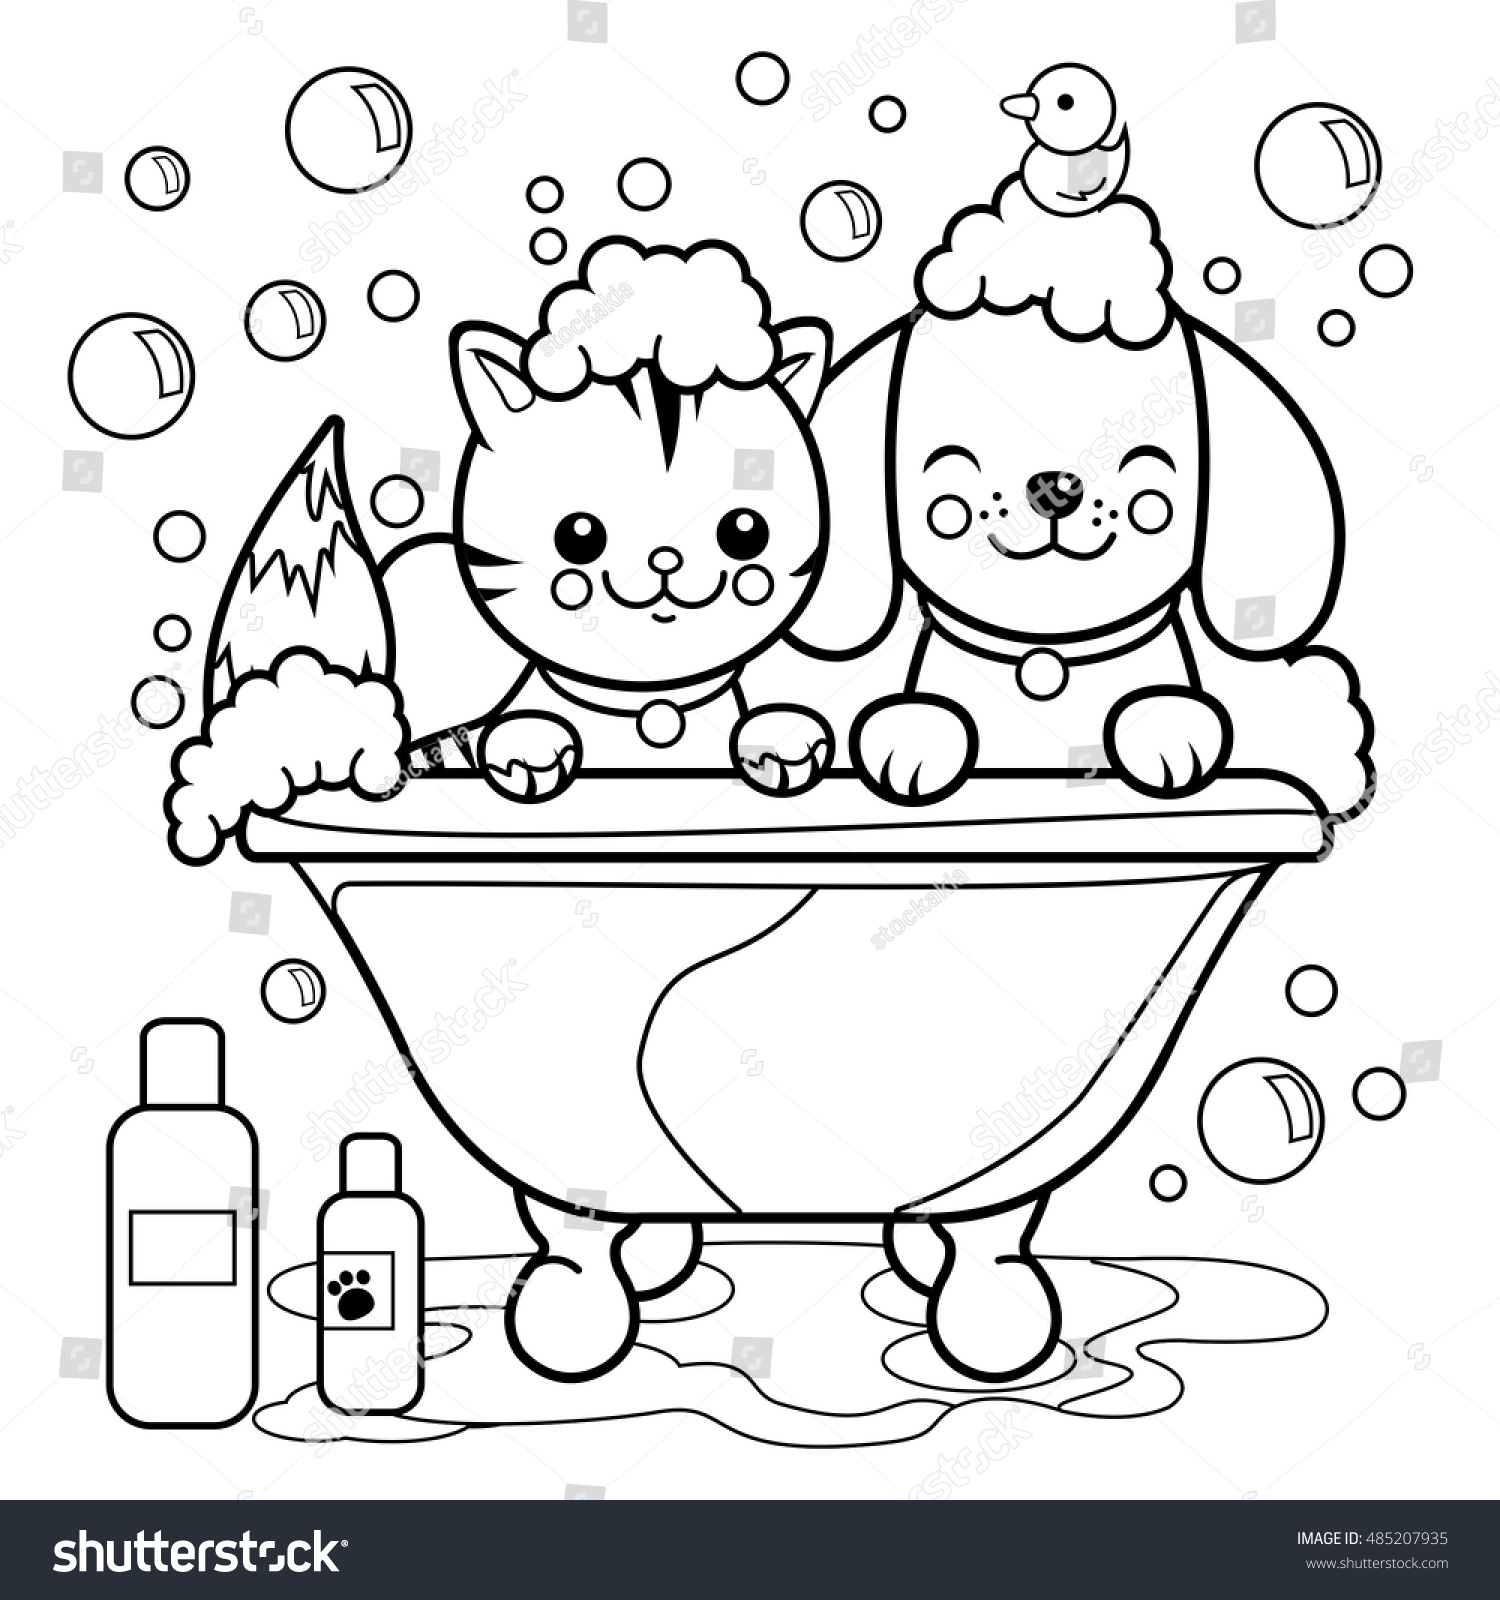 Puppy Coloring Pics In Bathtub Coloring Printable Coloring Pages